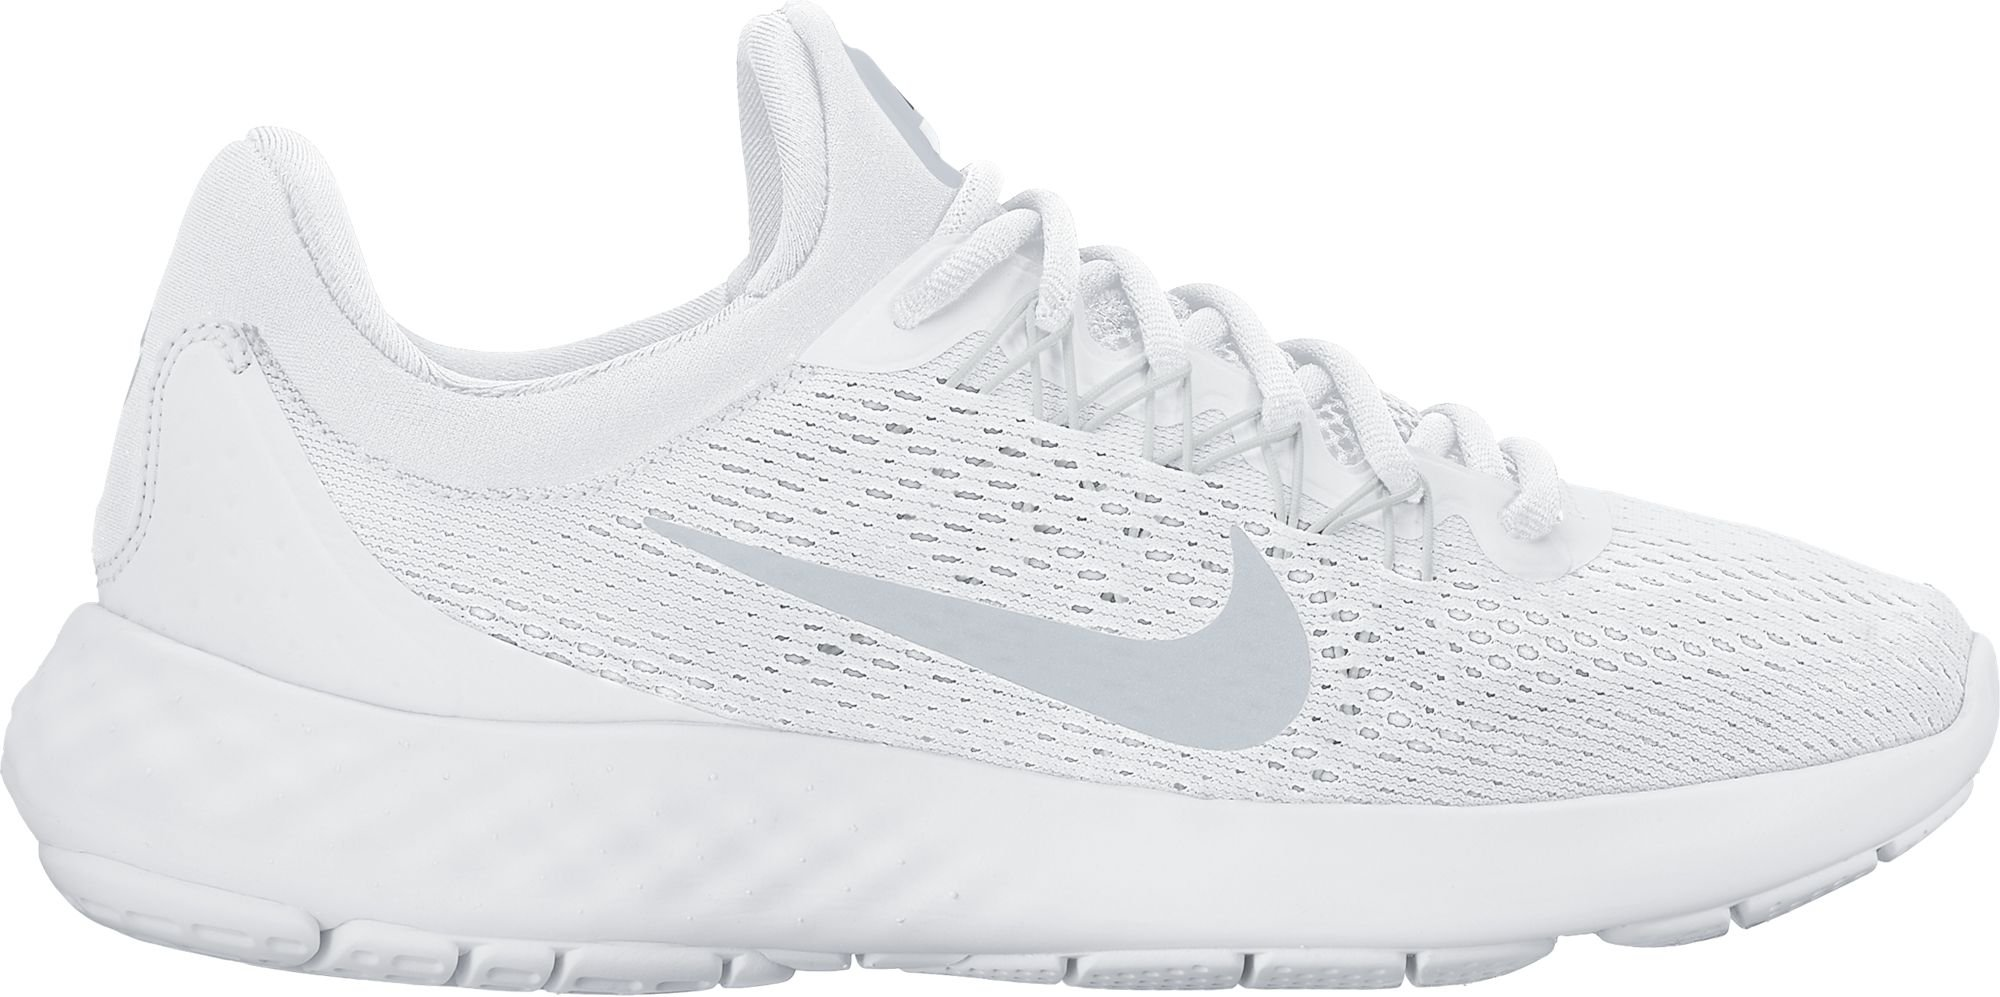 83a6037c125d Galleon - Nike Women s Lunar Skyelux White Pure Platinum Off White Running  Shoe (7)